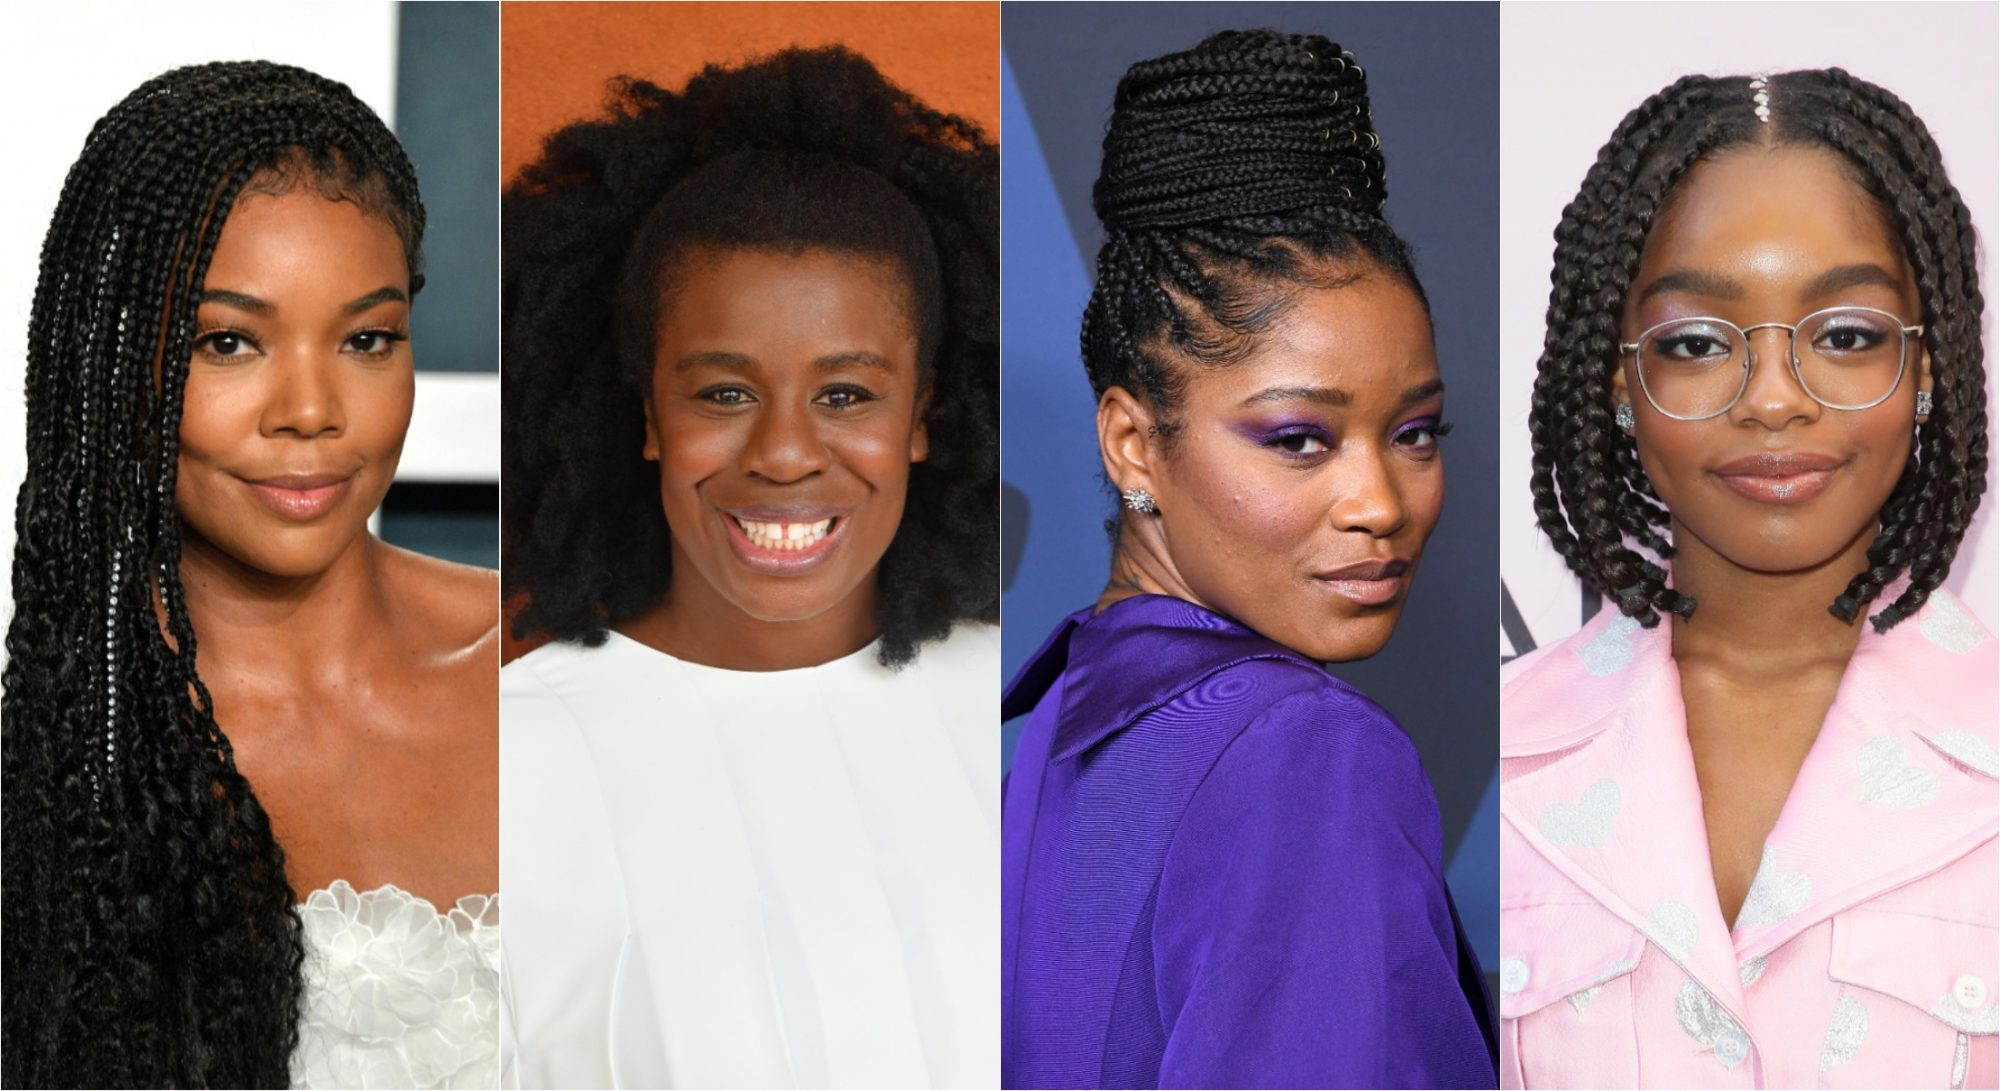 gabrielle union, uzo aduba, keke palmer, black hair discrimination